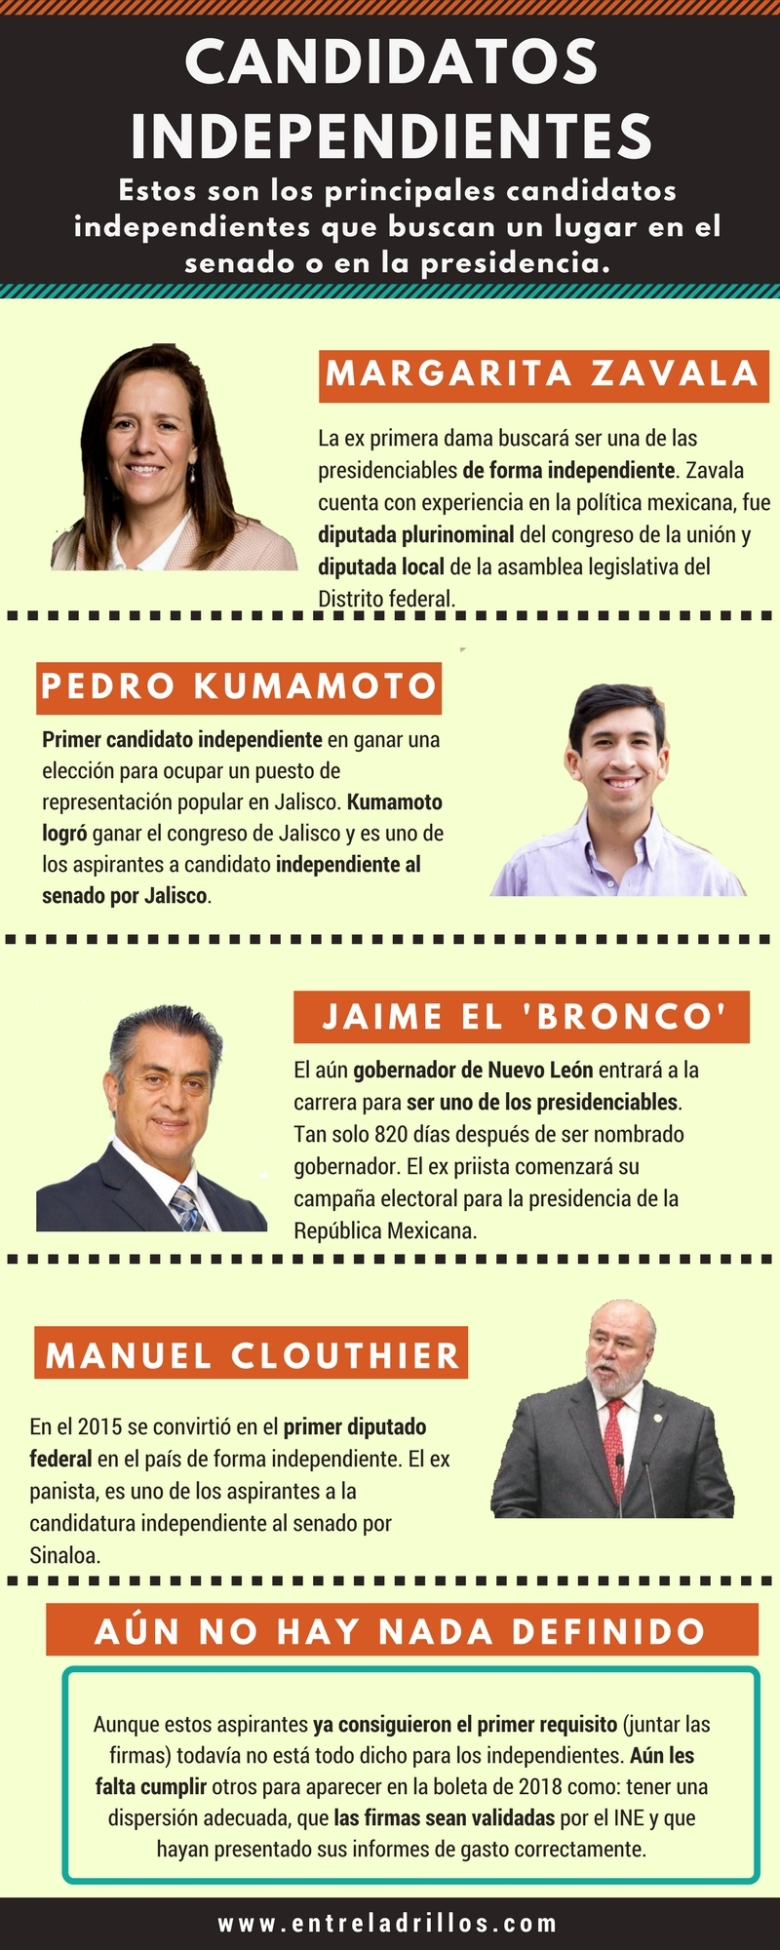 Candidatos independientes OK